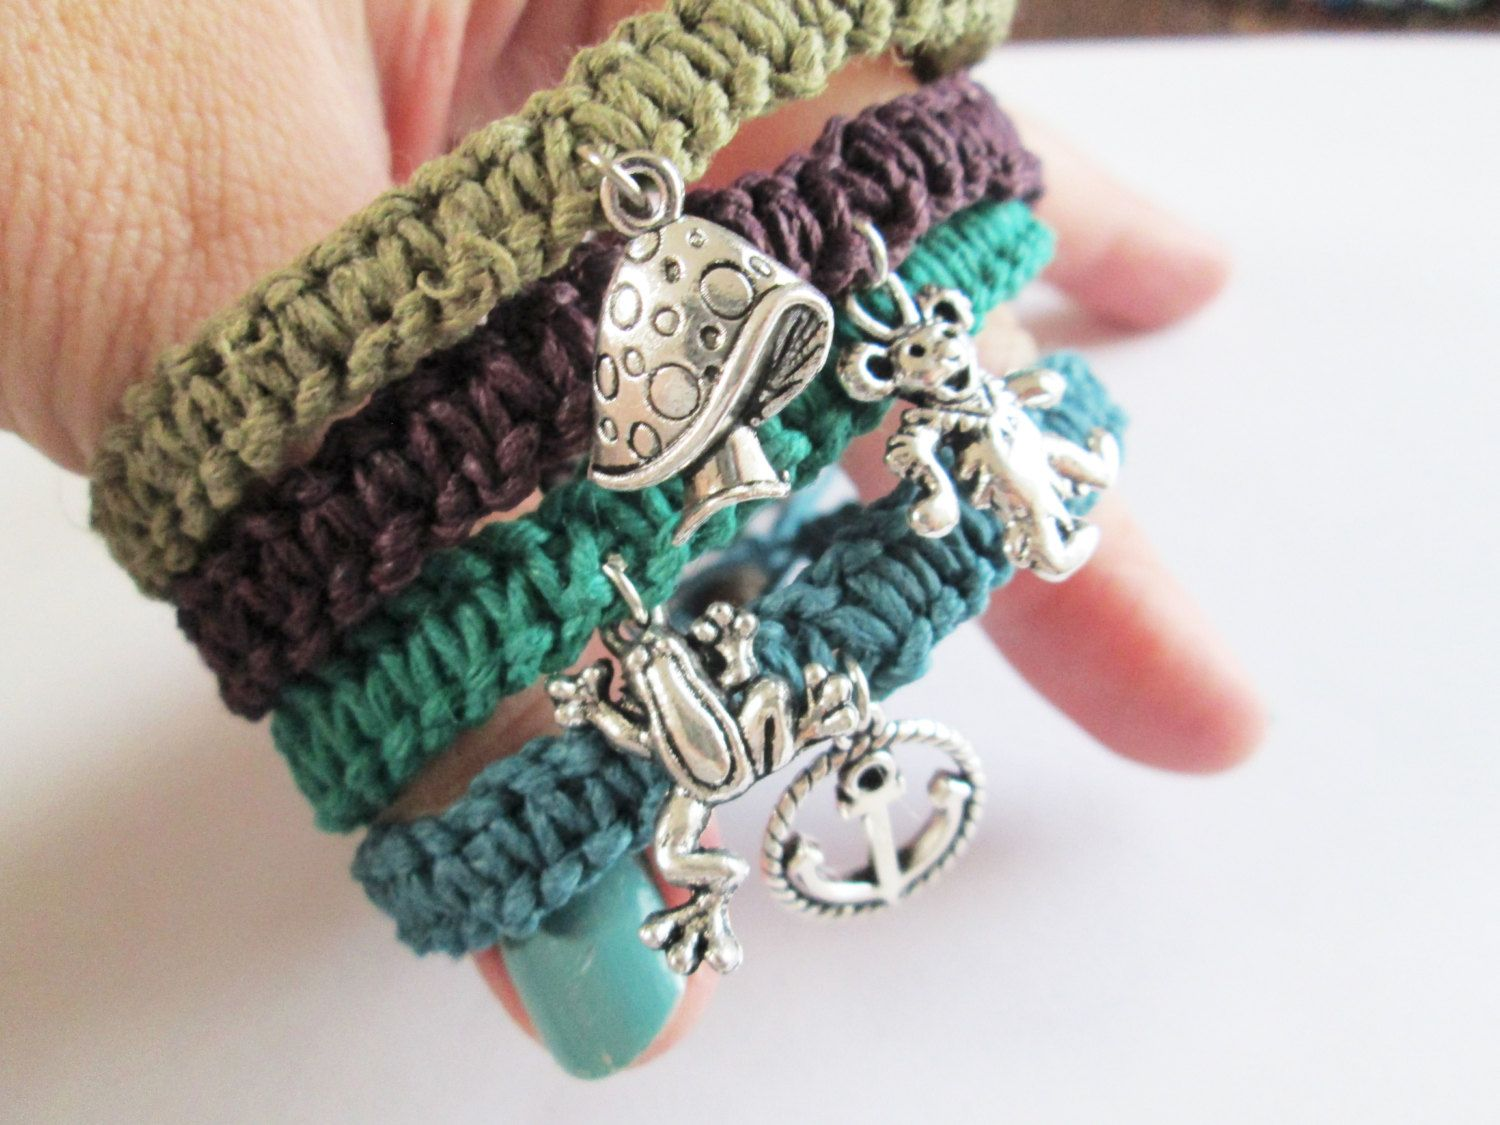 artificial bracelets pin and bell knit anklets anklet ceramic small handmade ankle